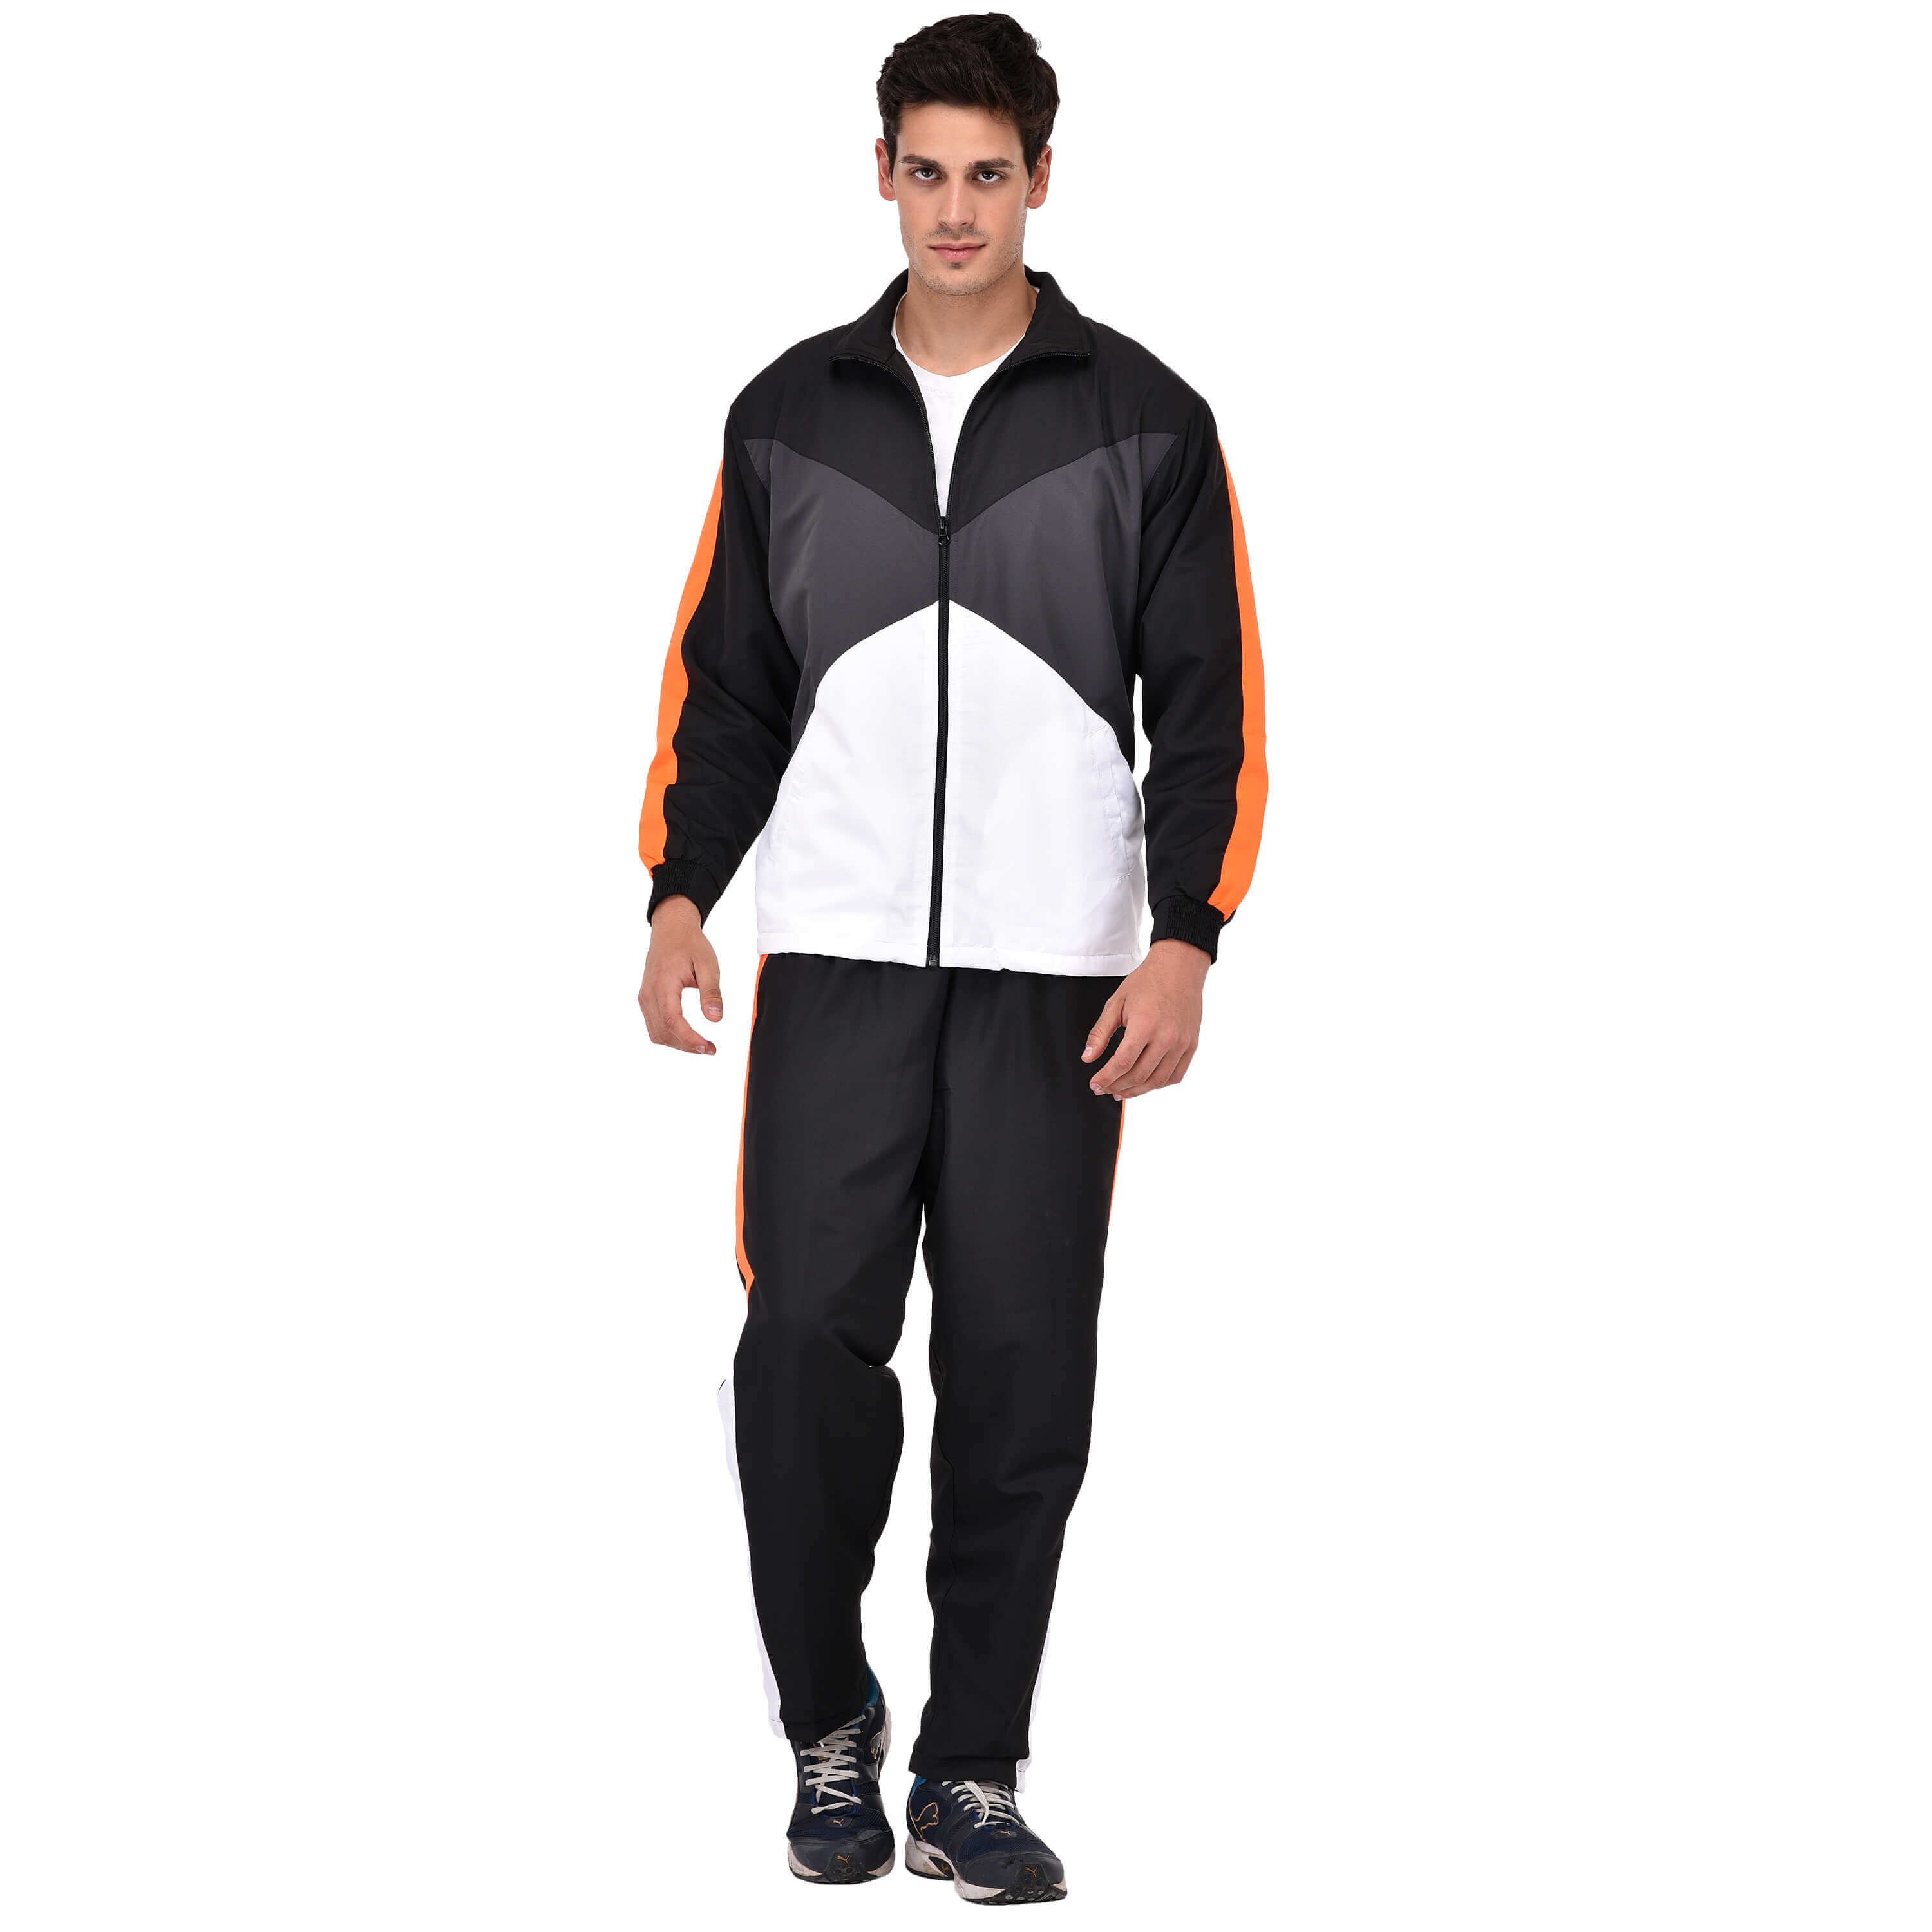 Sports Tracksuit Manufacturers in Bolivia